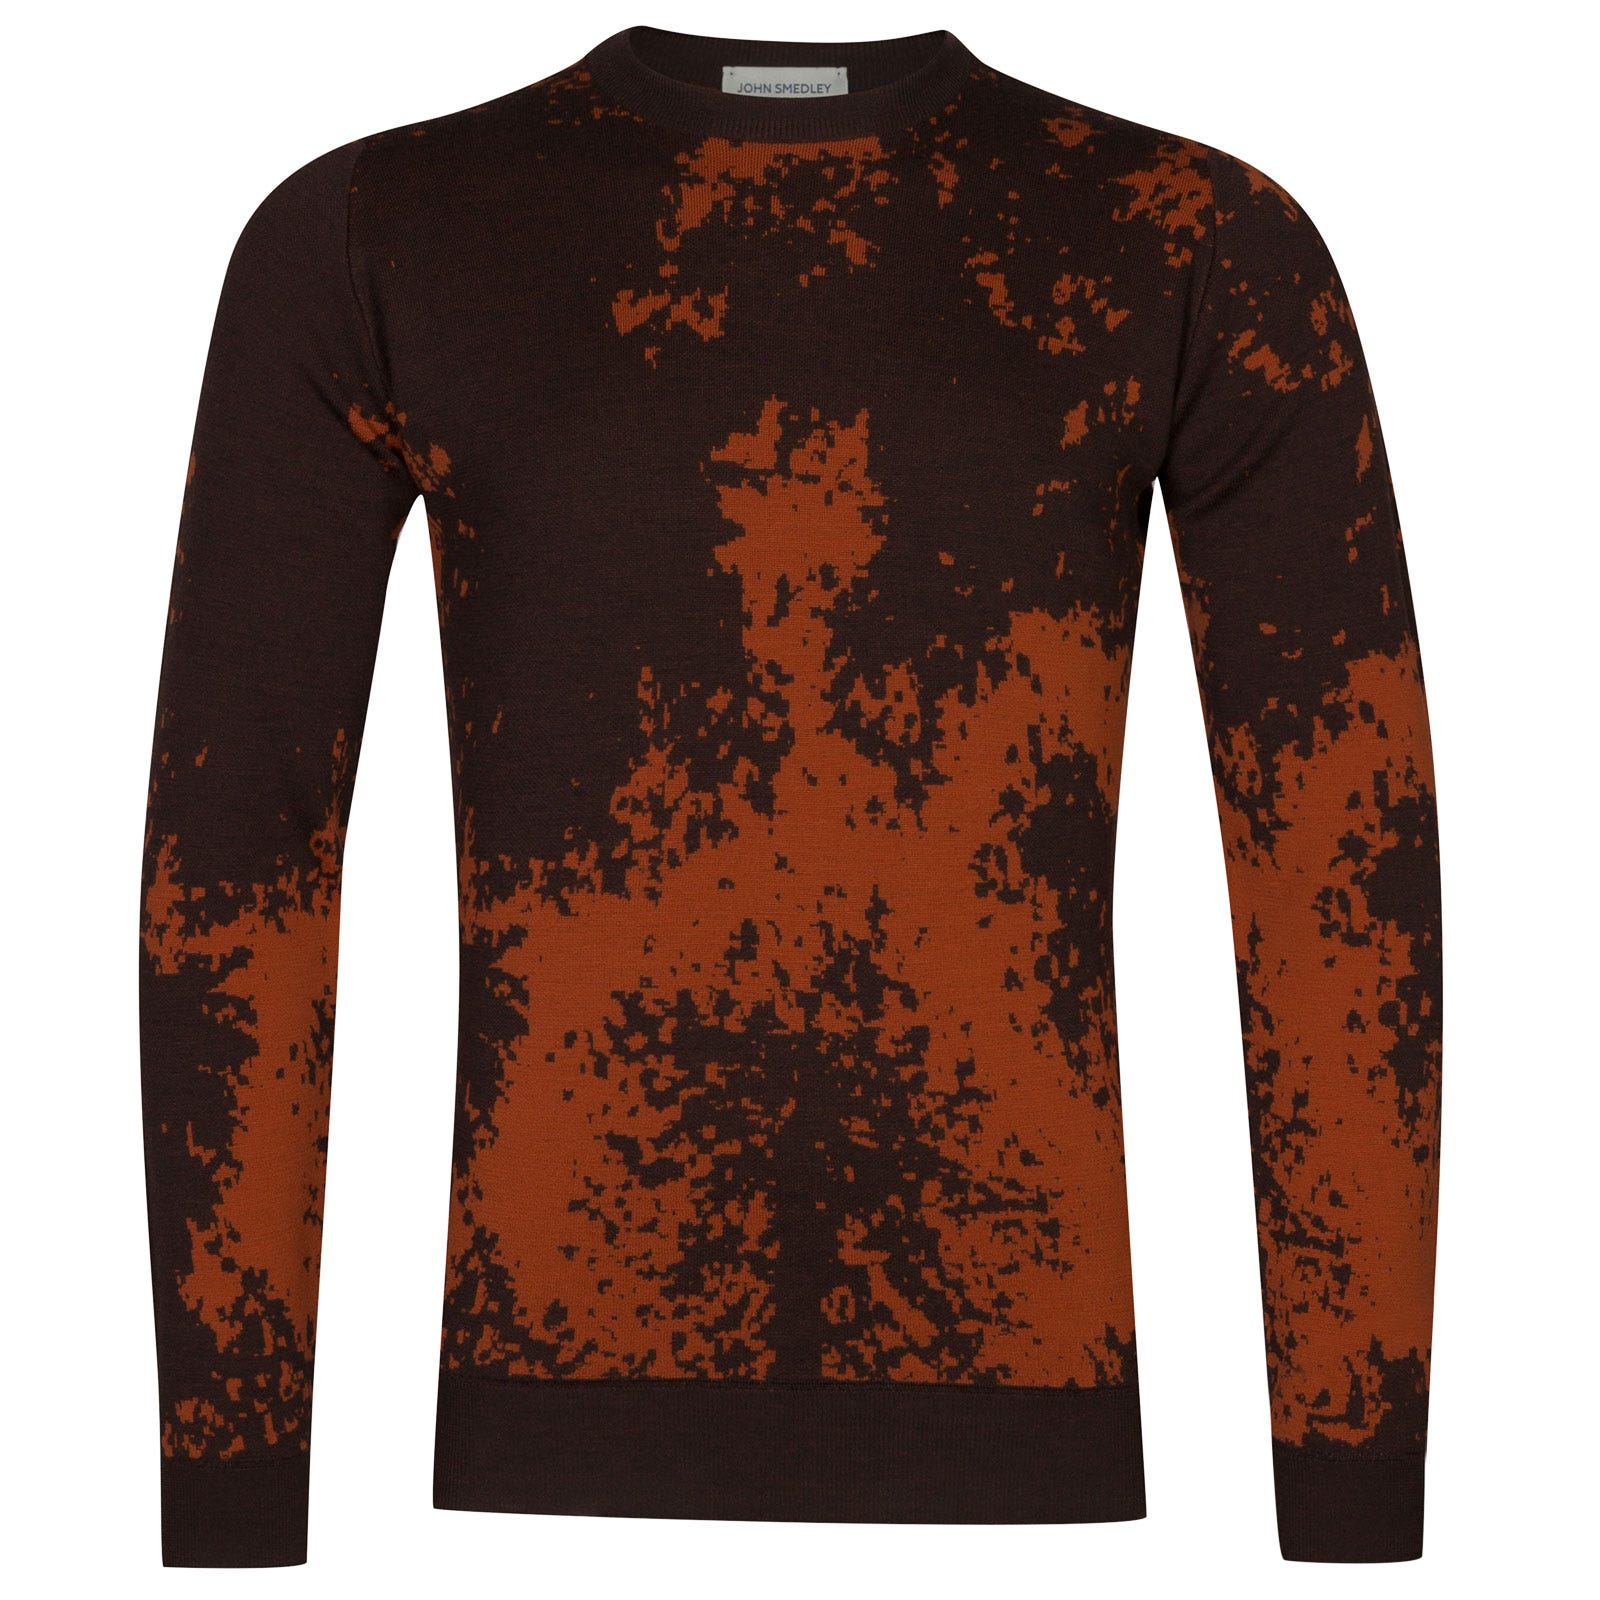 John Smedley bowland Merino Wool Pullover in Chestnut/Flare Orange-XL